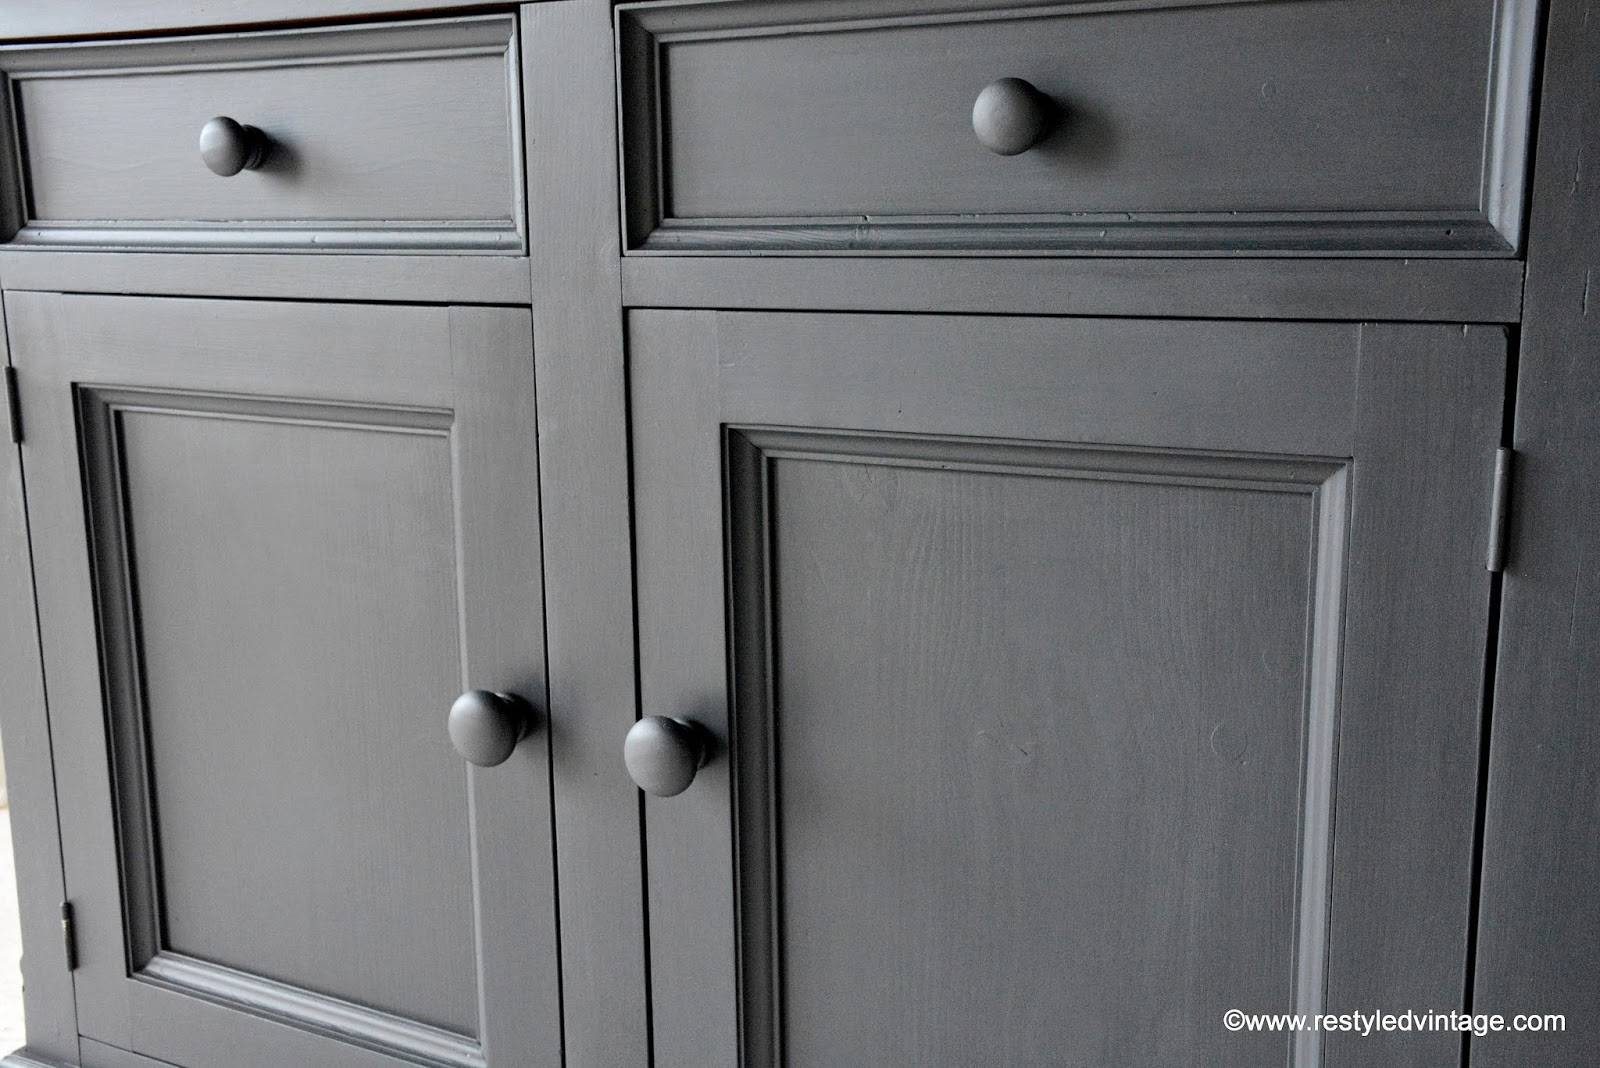 Restyled Vintage: How To Get A Great Waxed Finish On Graphite Within Annie Sloan Painted Sideboards (View 7 of 15)